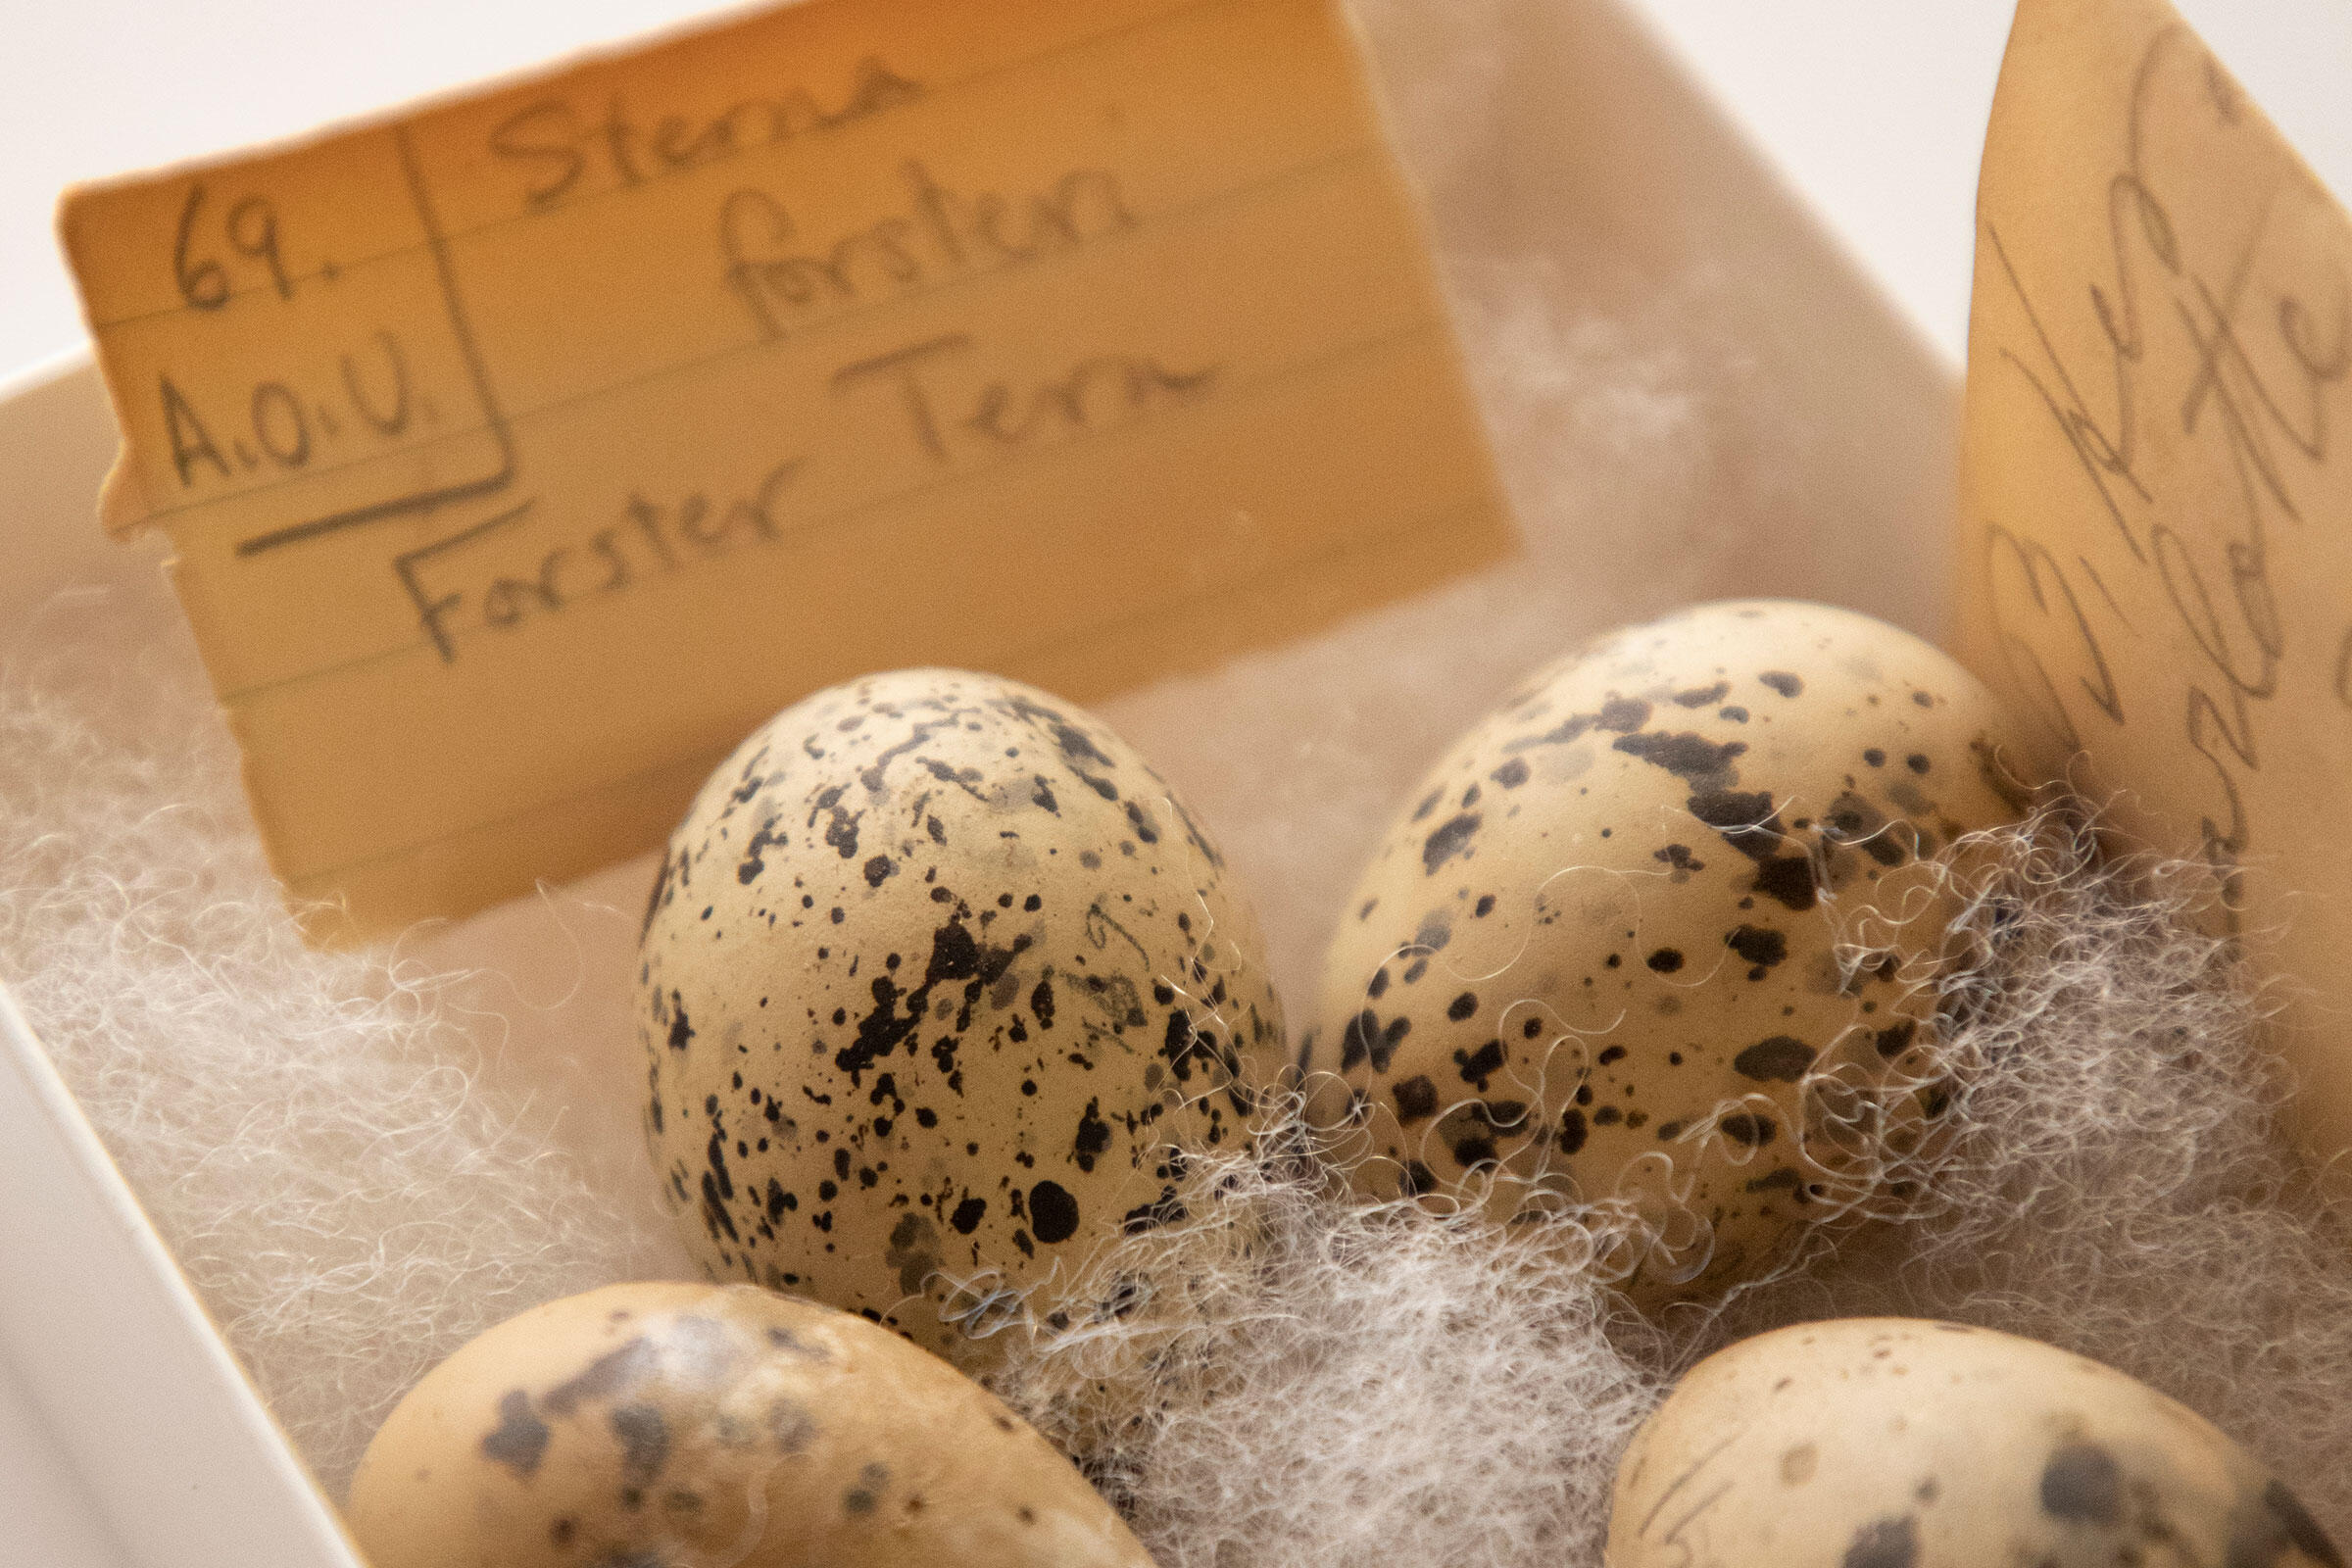 Eggs from the collection of Charles Pennock at The Academy of Natural Sciences of Drexel University in Philadelphia, Pennsylvania.